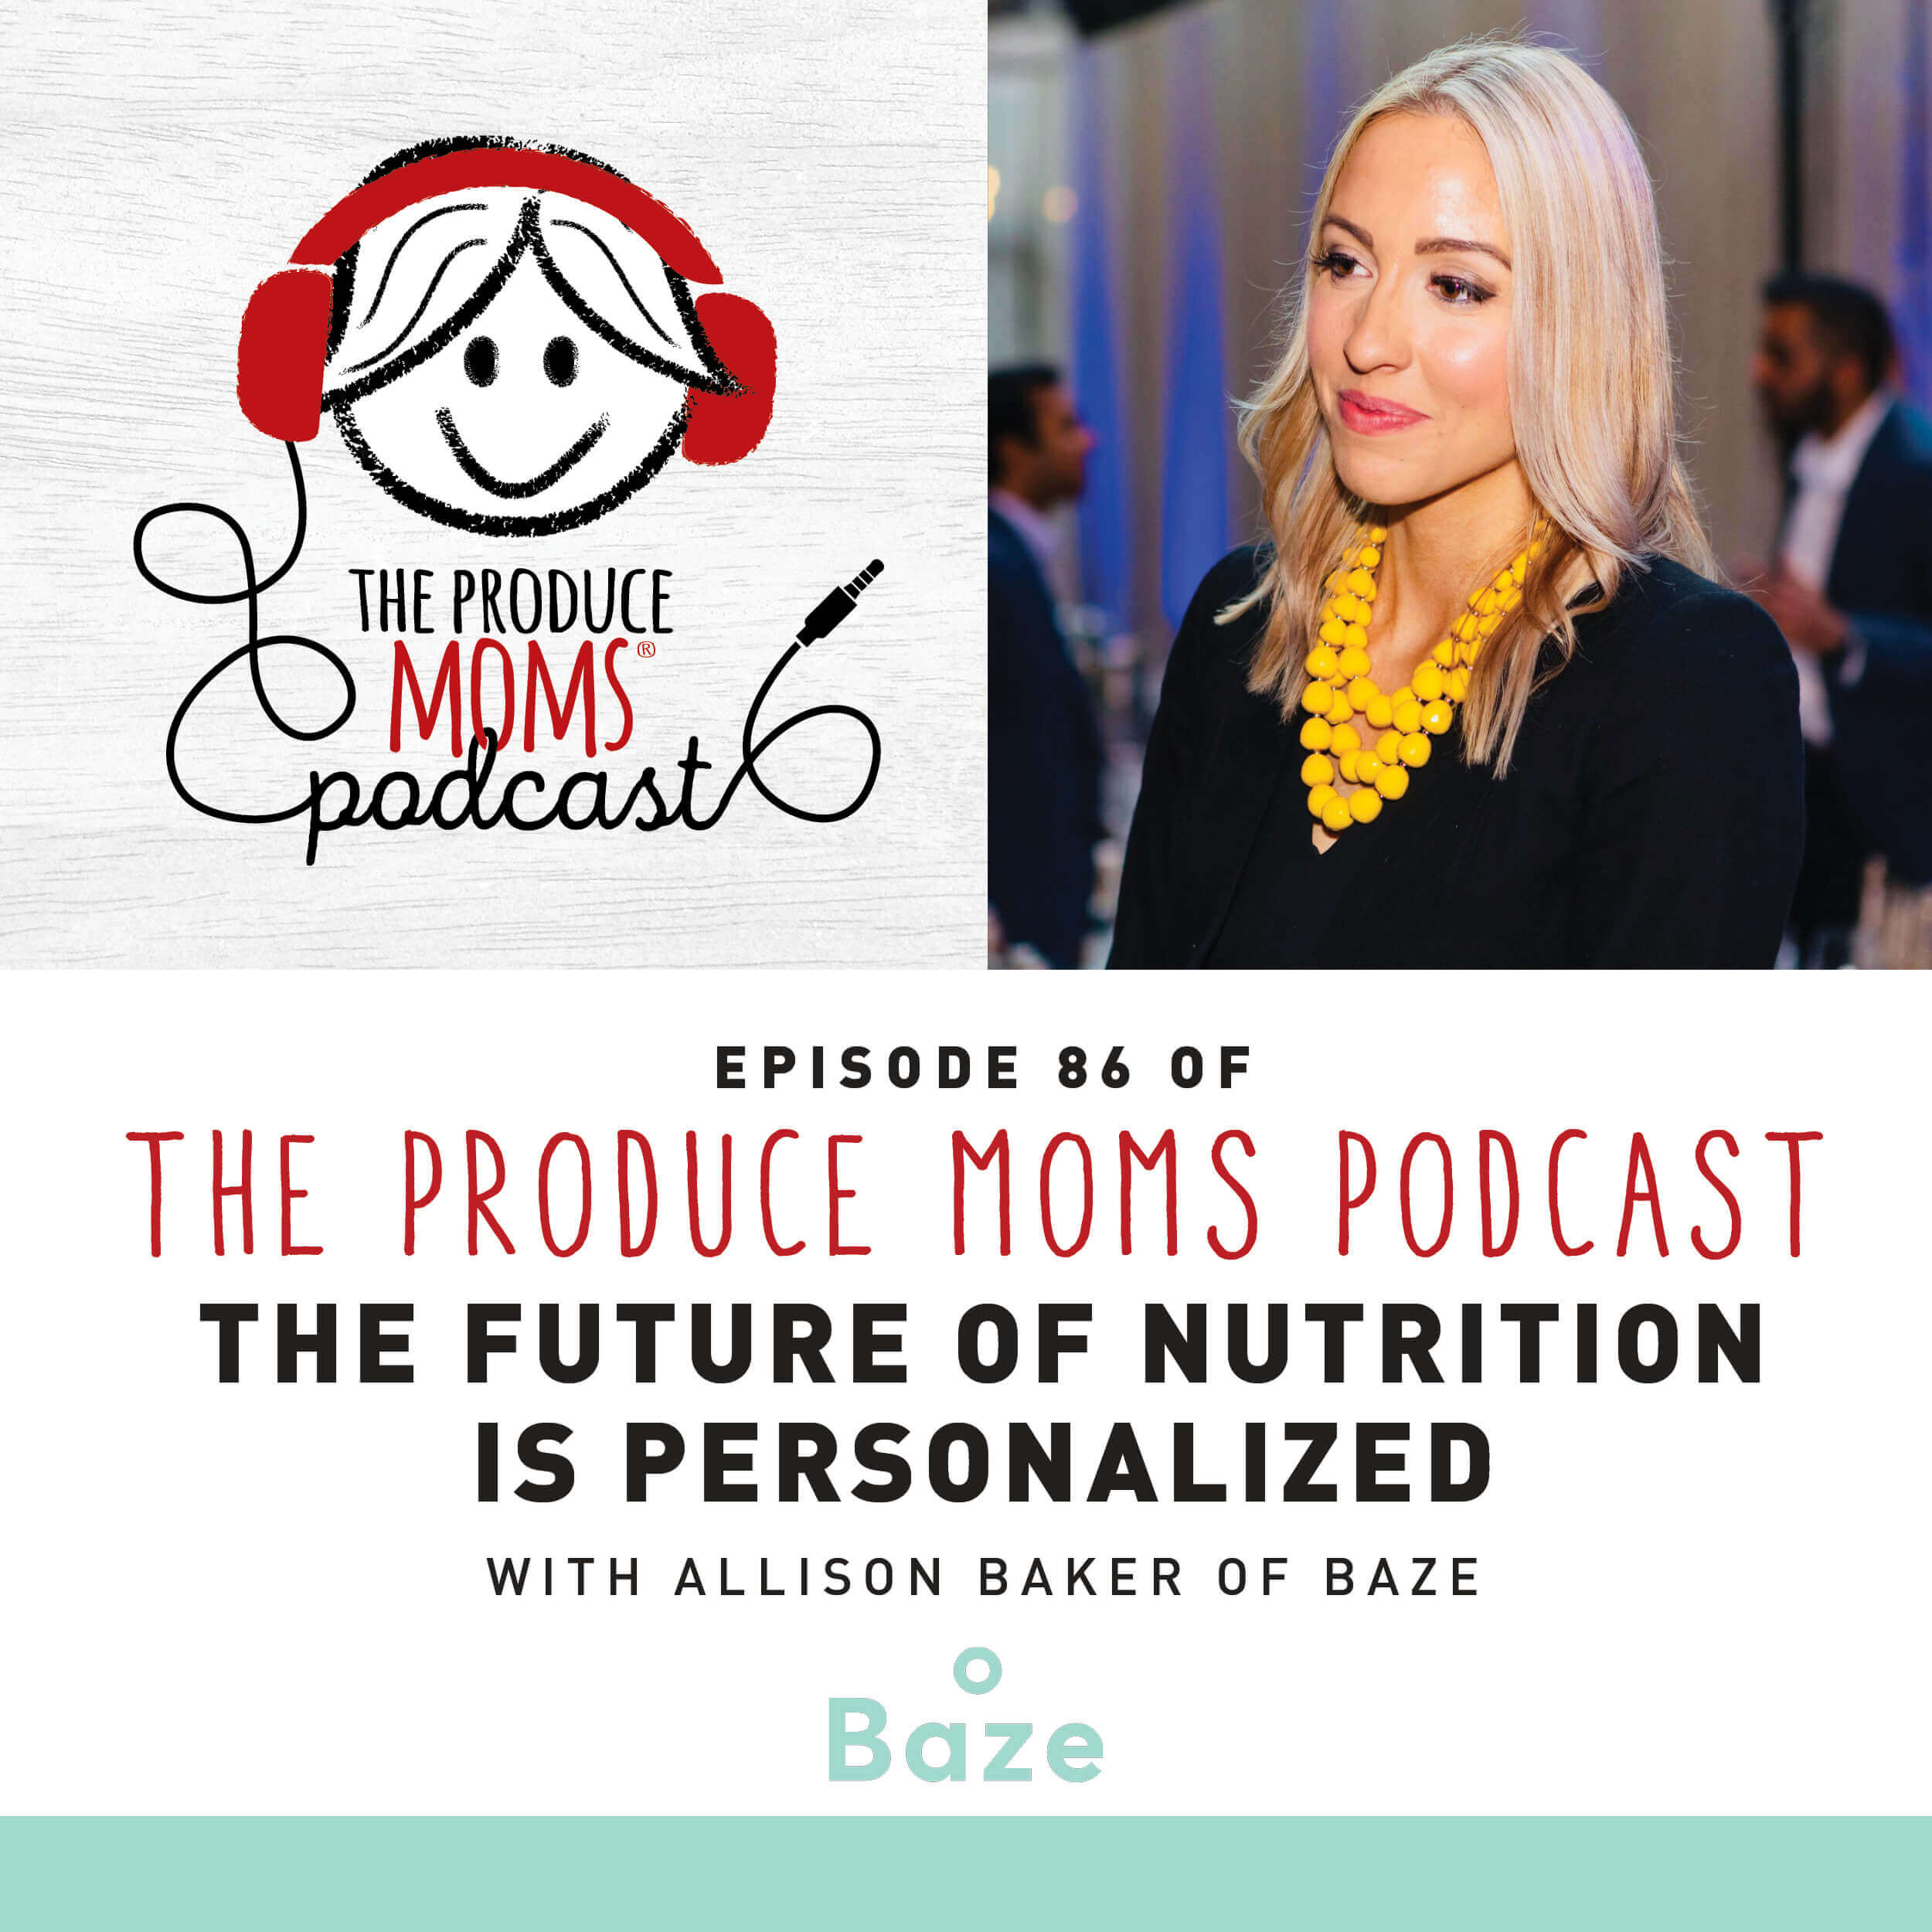 TPM Podcast with Allison Baker of Baze